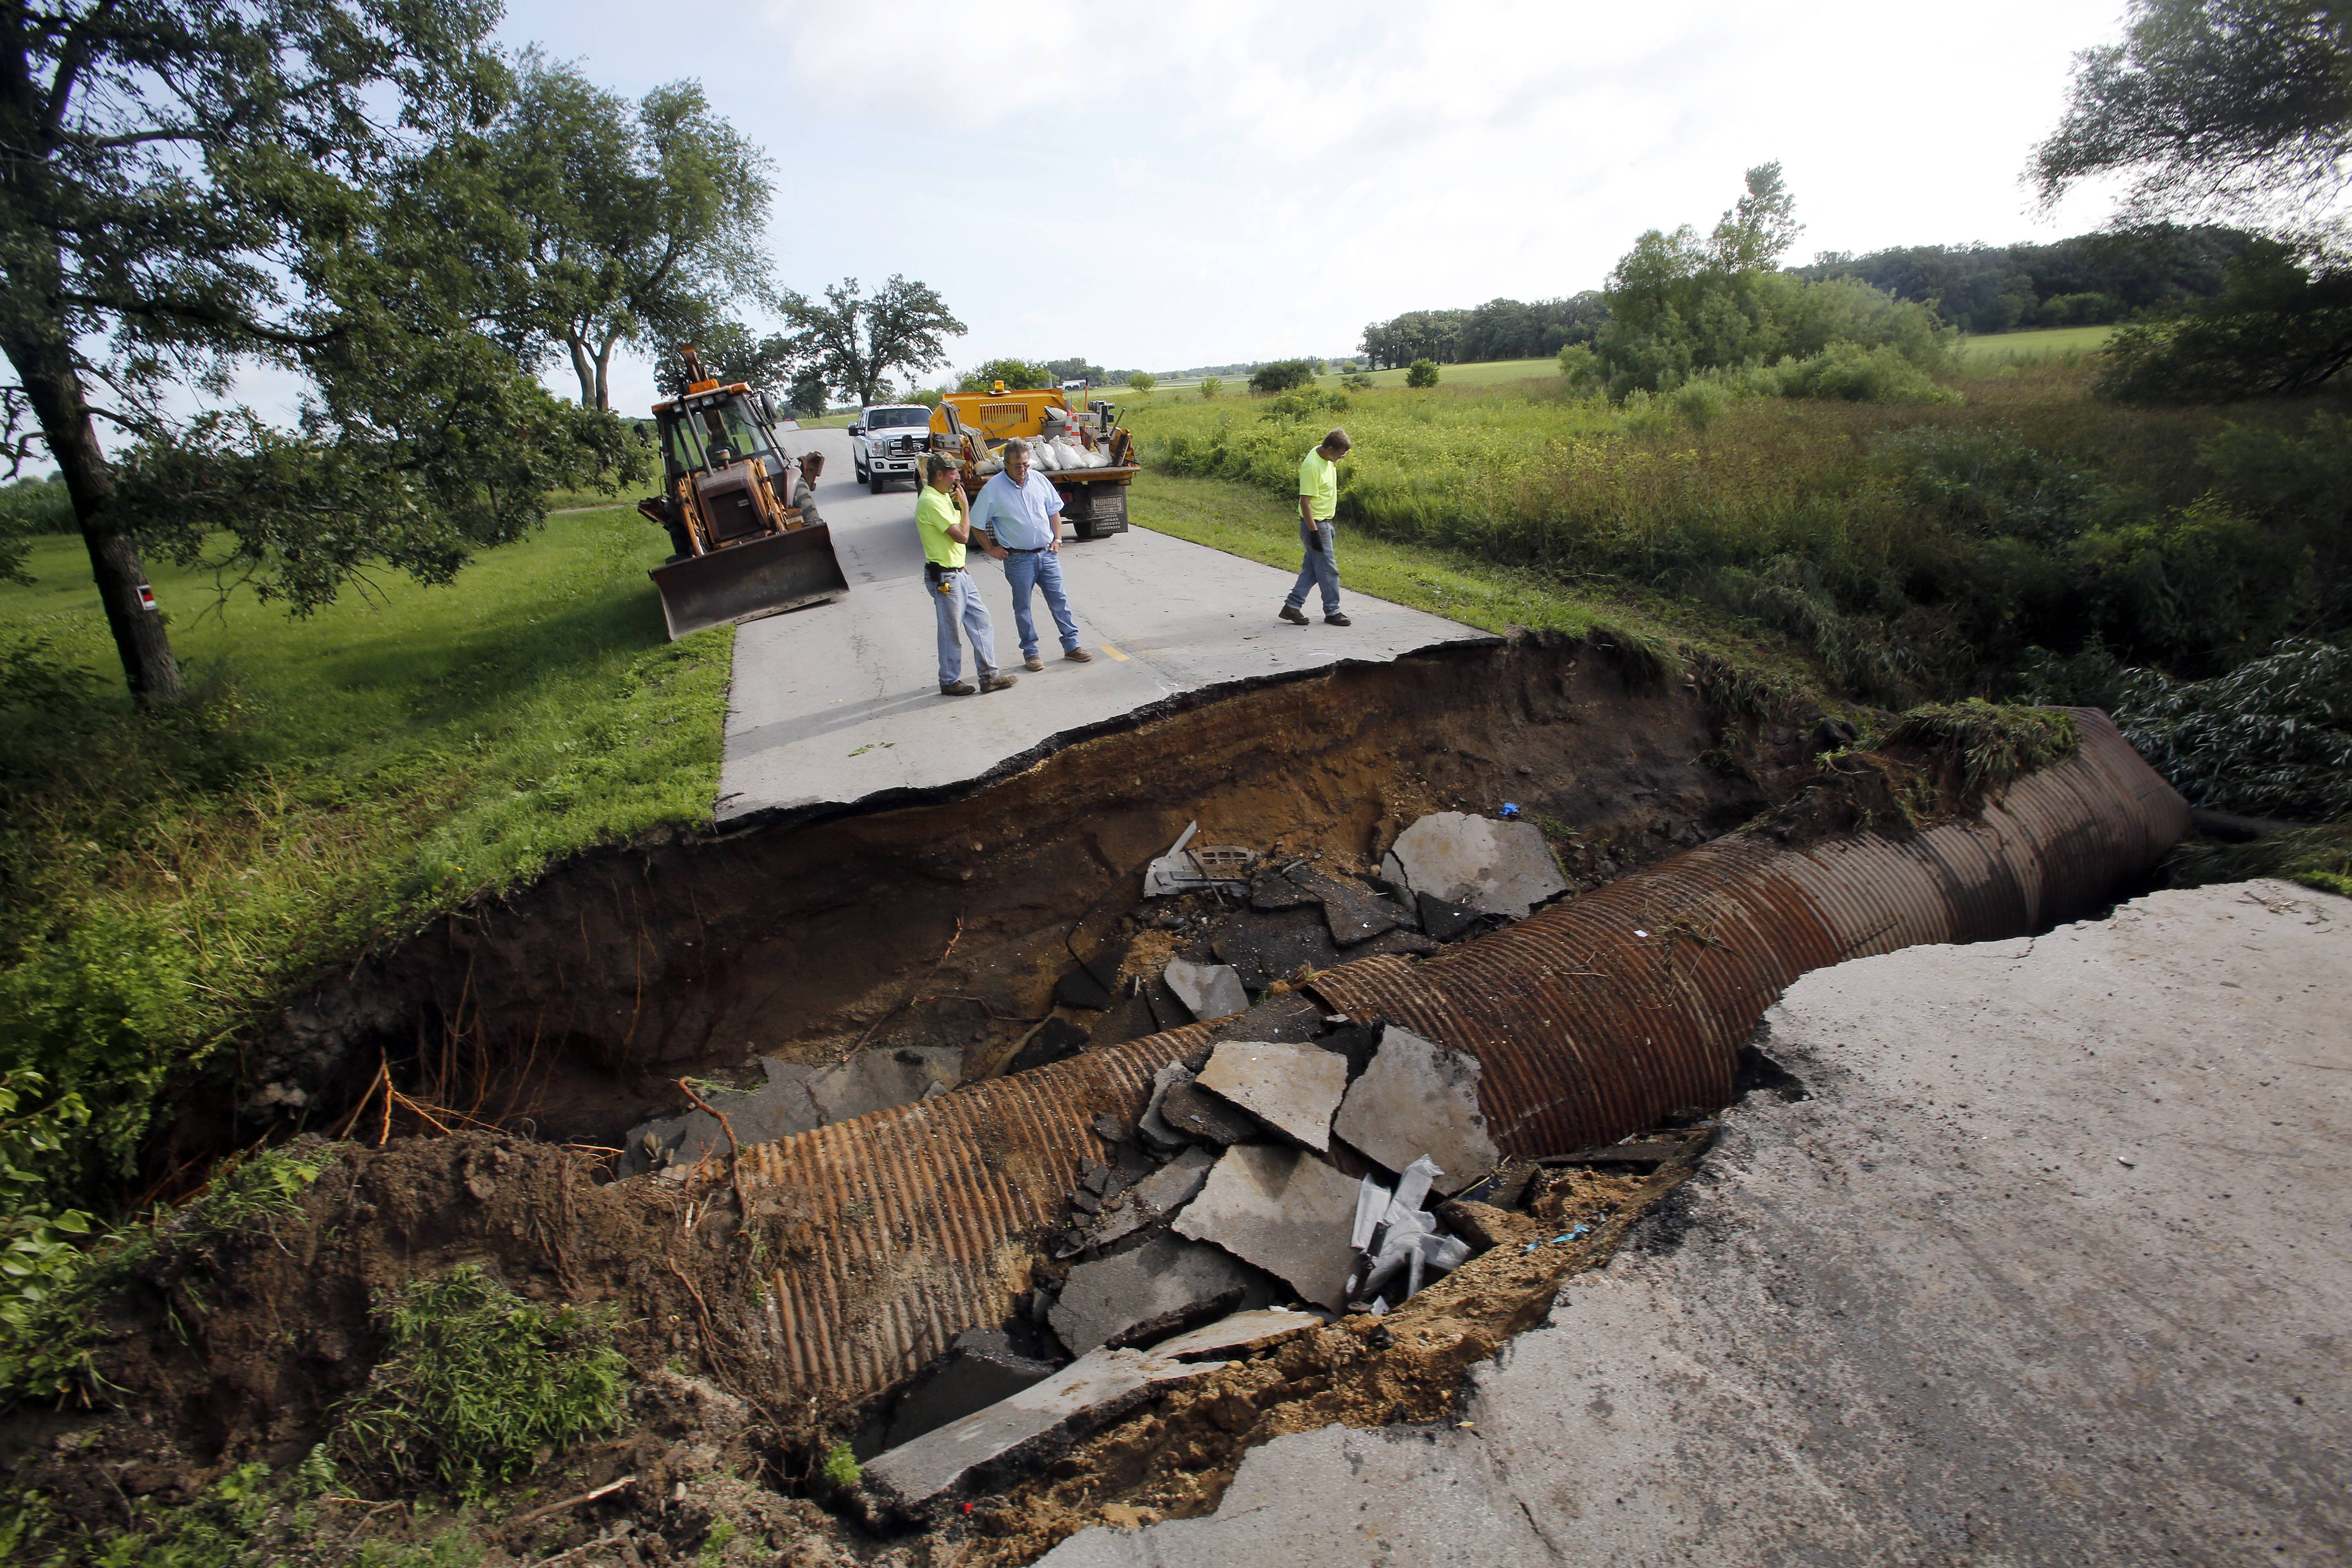 Kane County crews look over a sinkhole on Thomas Road in Kane County. Crews on the scene were hopeful that the road will reopen by the end of the day Wednesday.